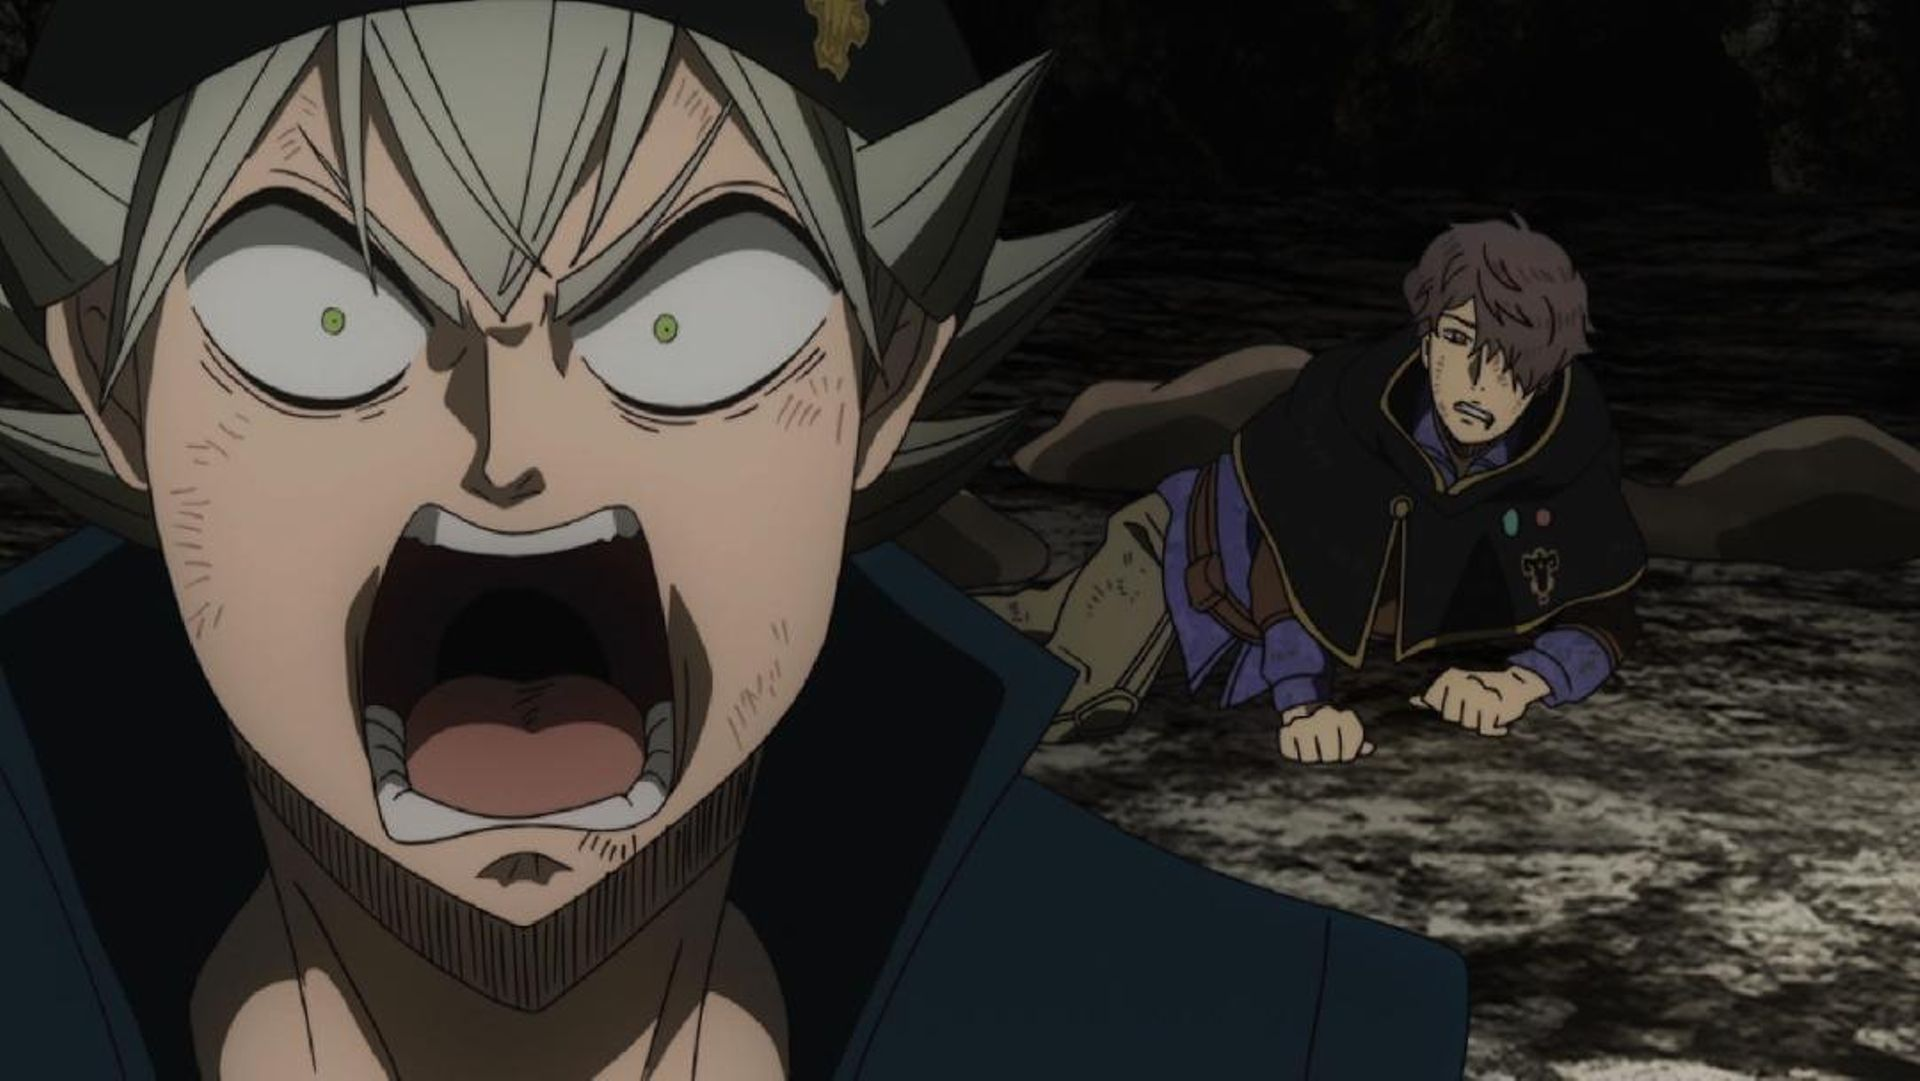 Julius Novachrono S2 Ep42 Black Clover But in fights like julius novachrono vs patry, the series' definition of absolute power isn't as attainable yet, and strength itself becomes more of a mystery and less something that you nab just by. to help somebody someday